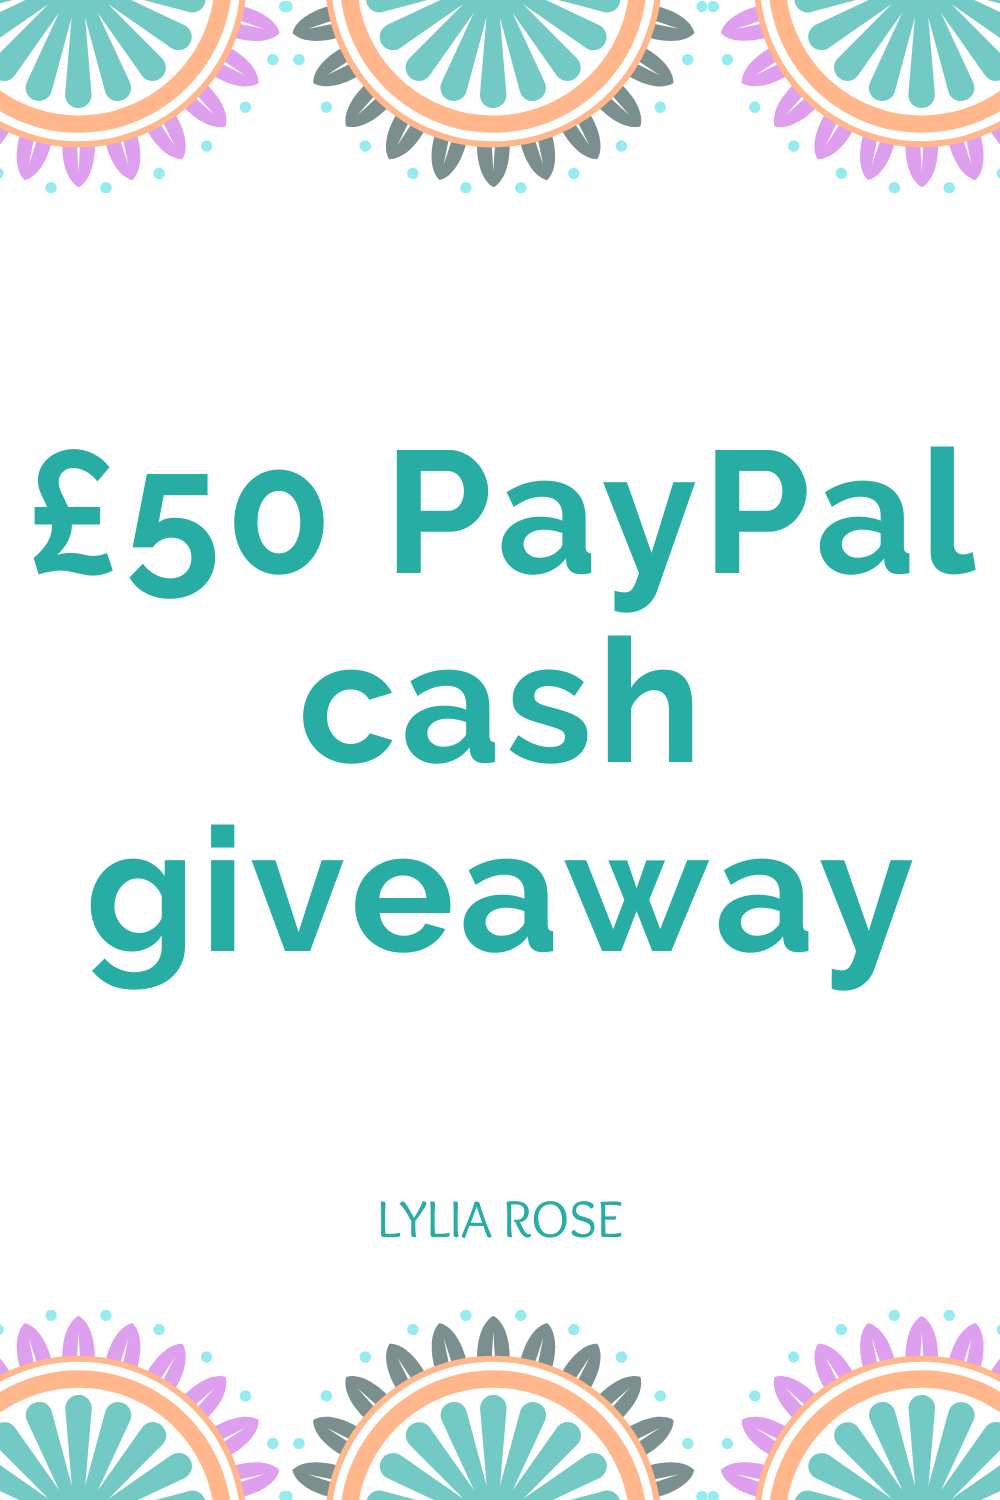 £50 PayPal cash giveaway